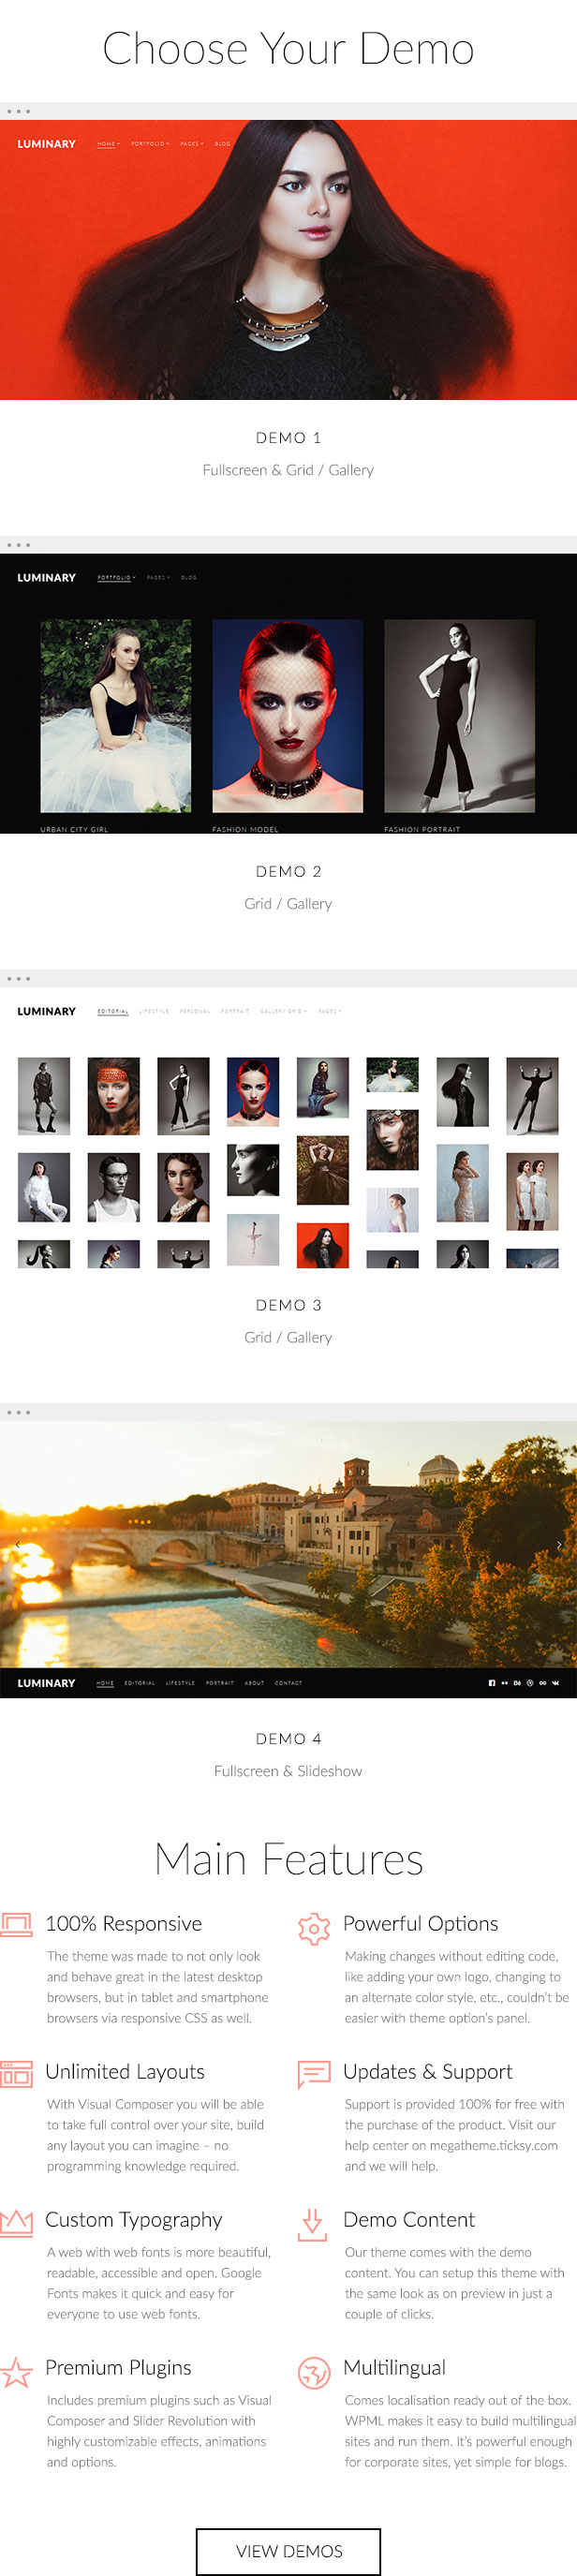 Luminary - Portfolio / Photography WordPress Theme